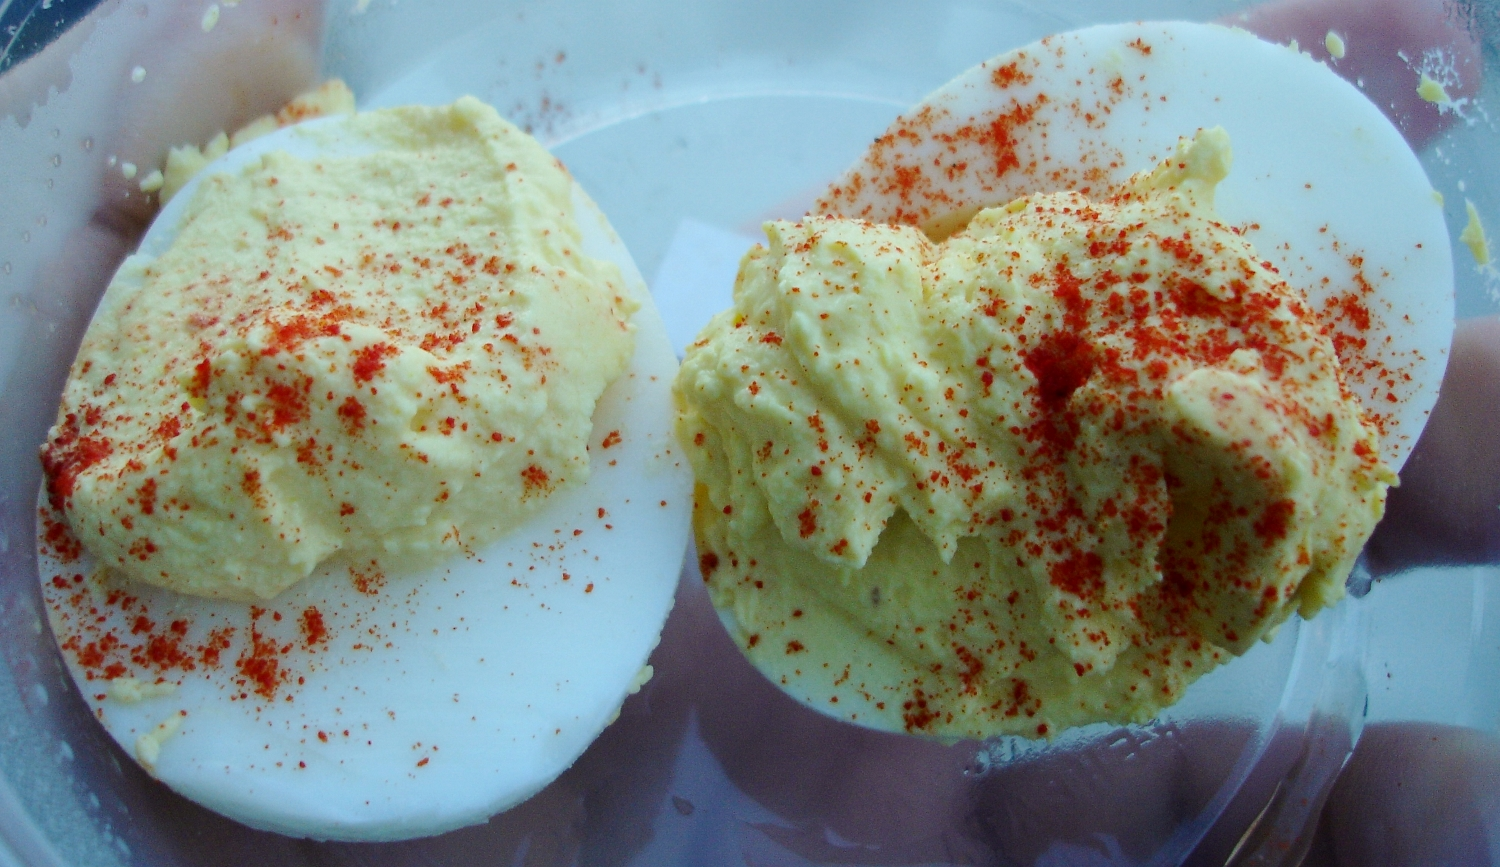 We found some homemade deviled eggs with a nice mustard kick in the refrigerator case.